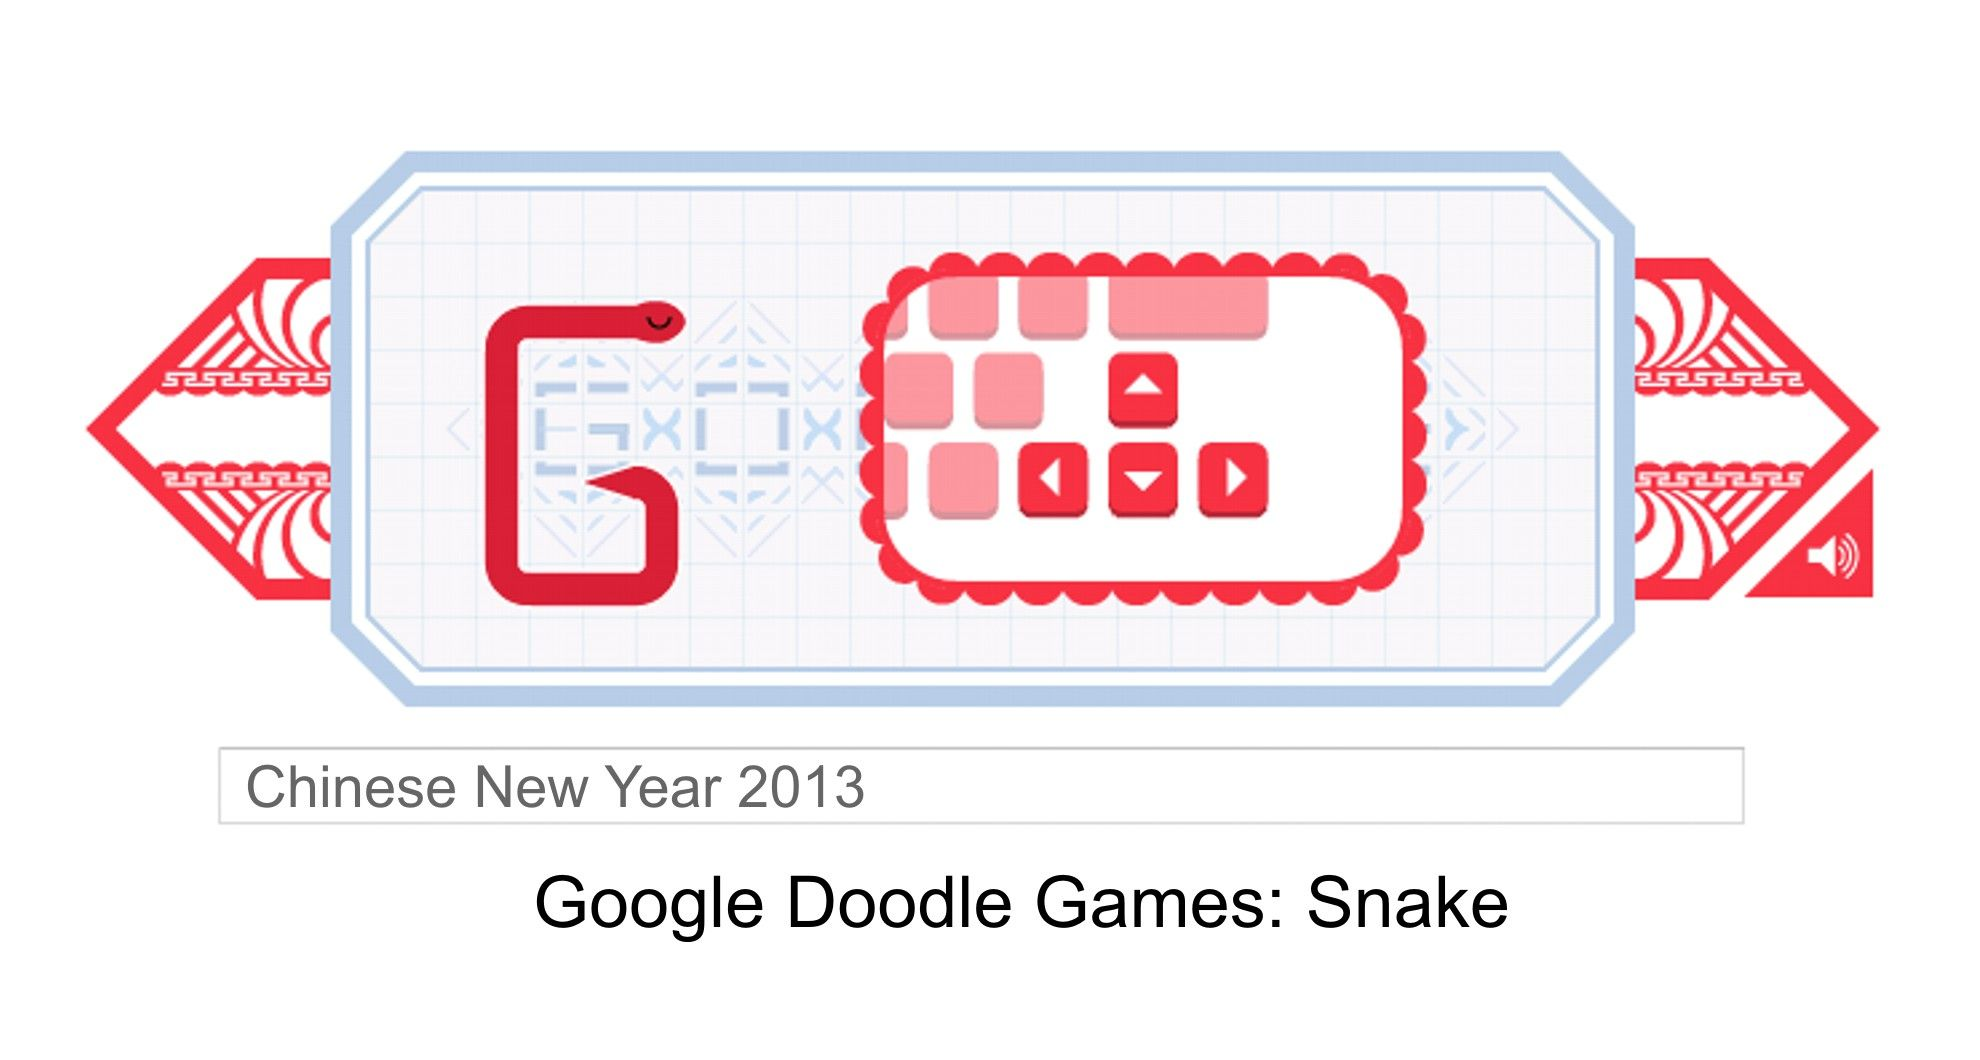 Google Games for Chinese New Year 2013 Google doodle